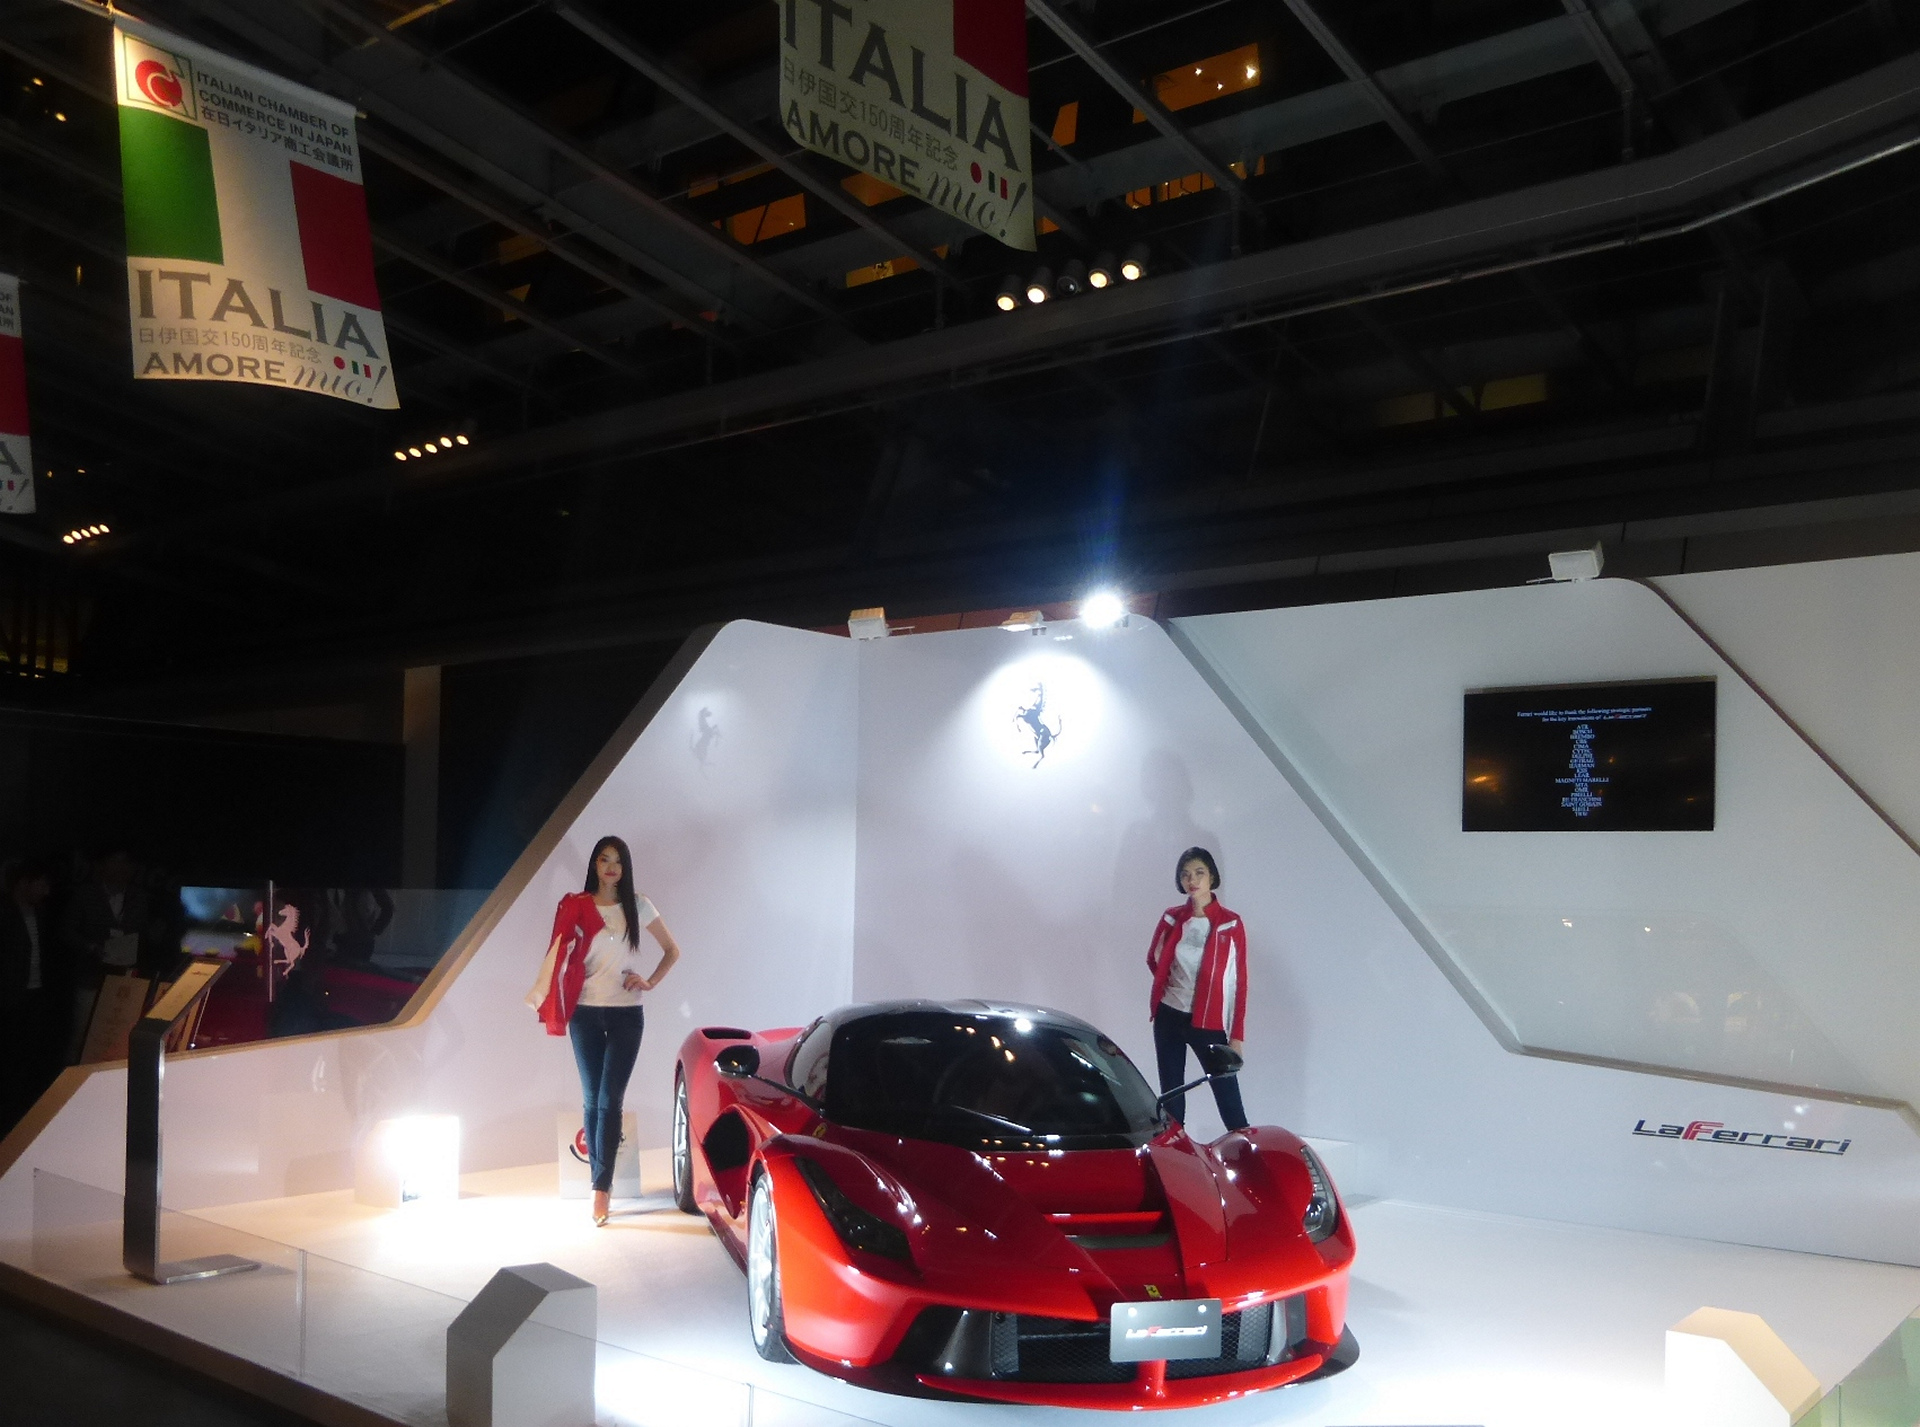 The 150th Anniversary of the Relationship Between Italy and Japan © Fiat Chrysler Automobiles N.V.